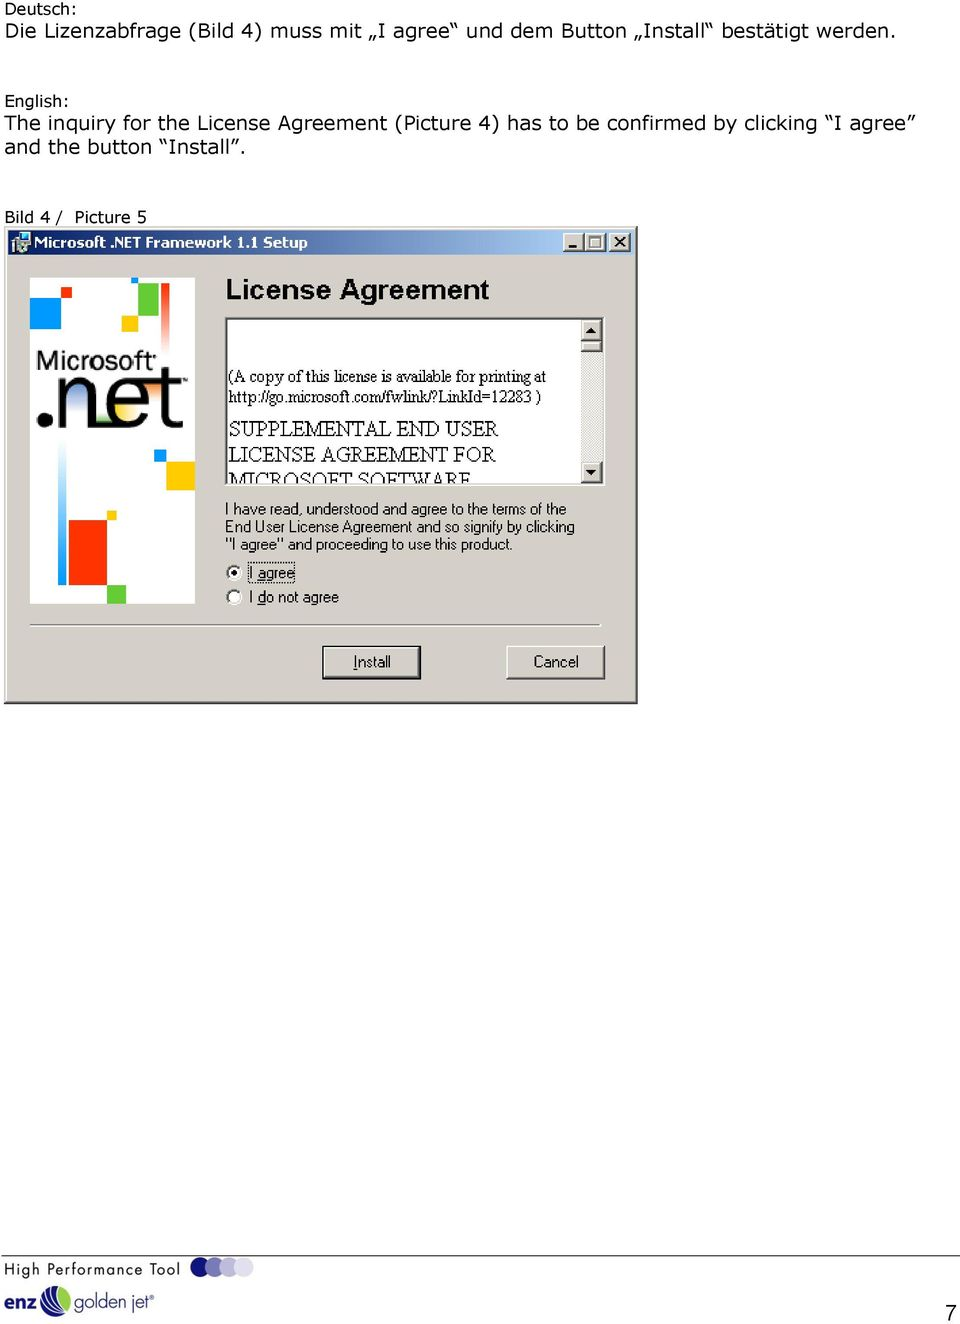 The inquiry for the License Agreement (Picture 4) has